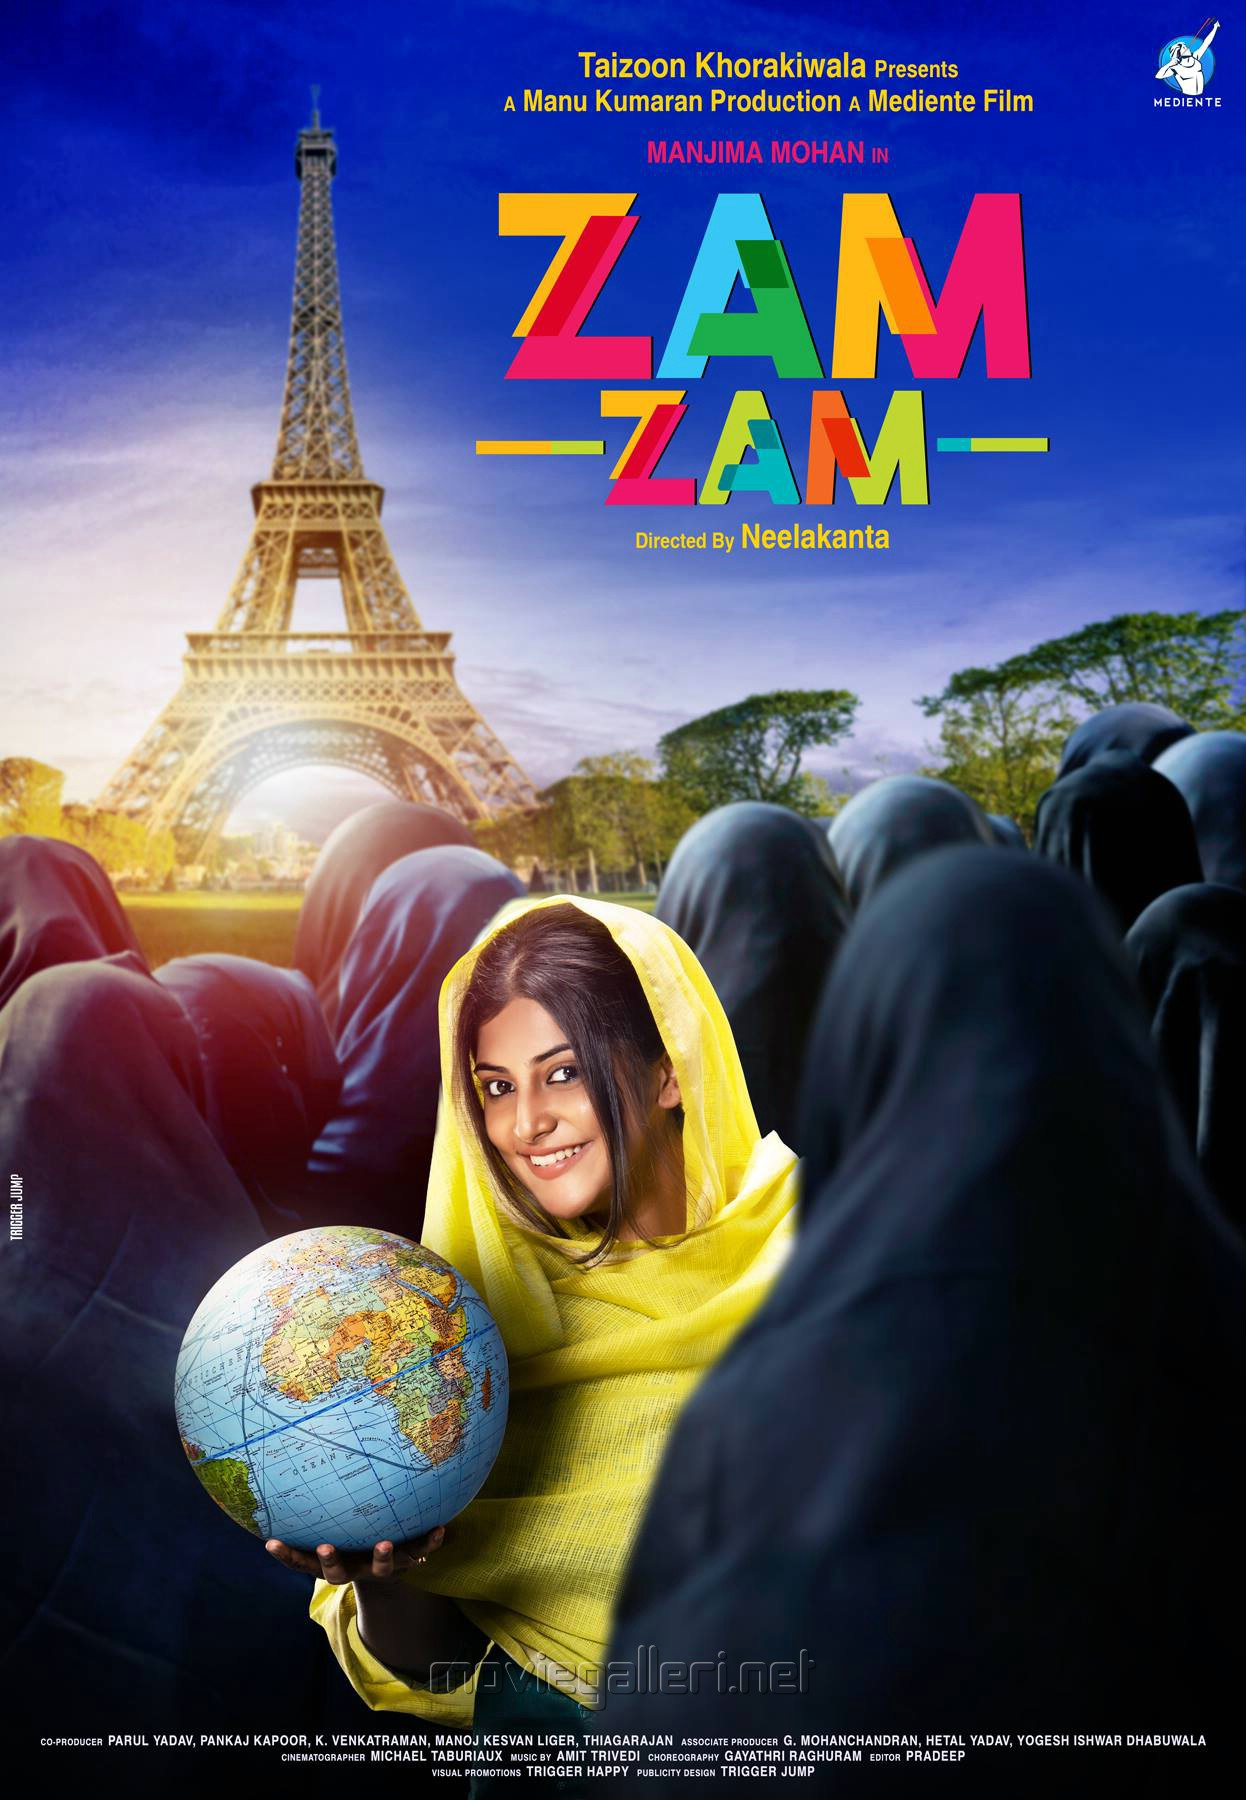 Manjima Mohan Zam Zam Movie First Look Posters HD